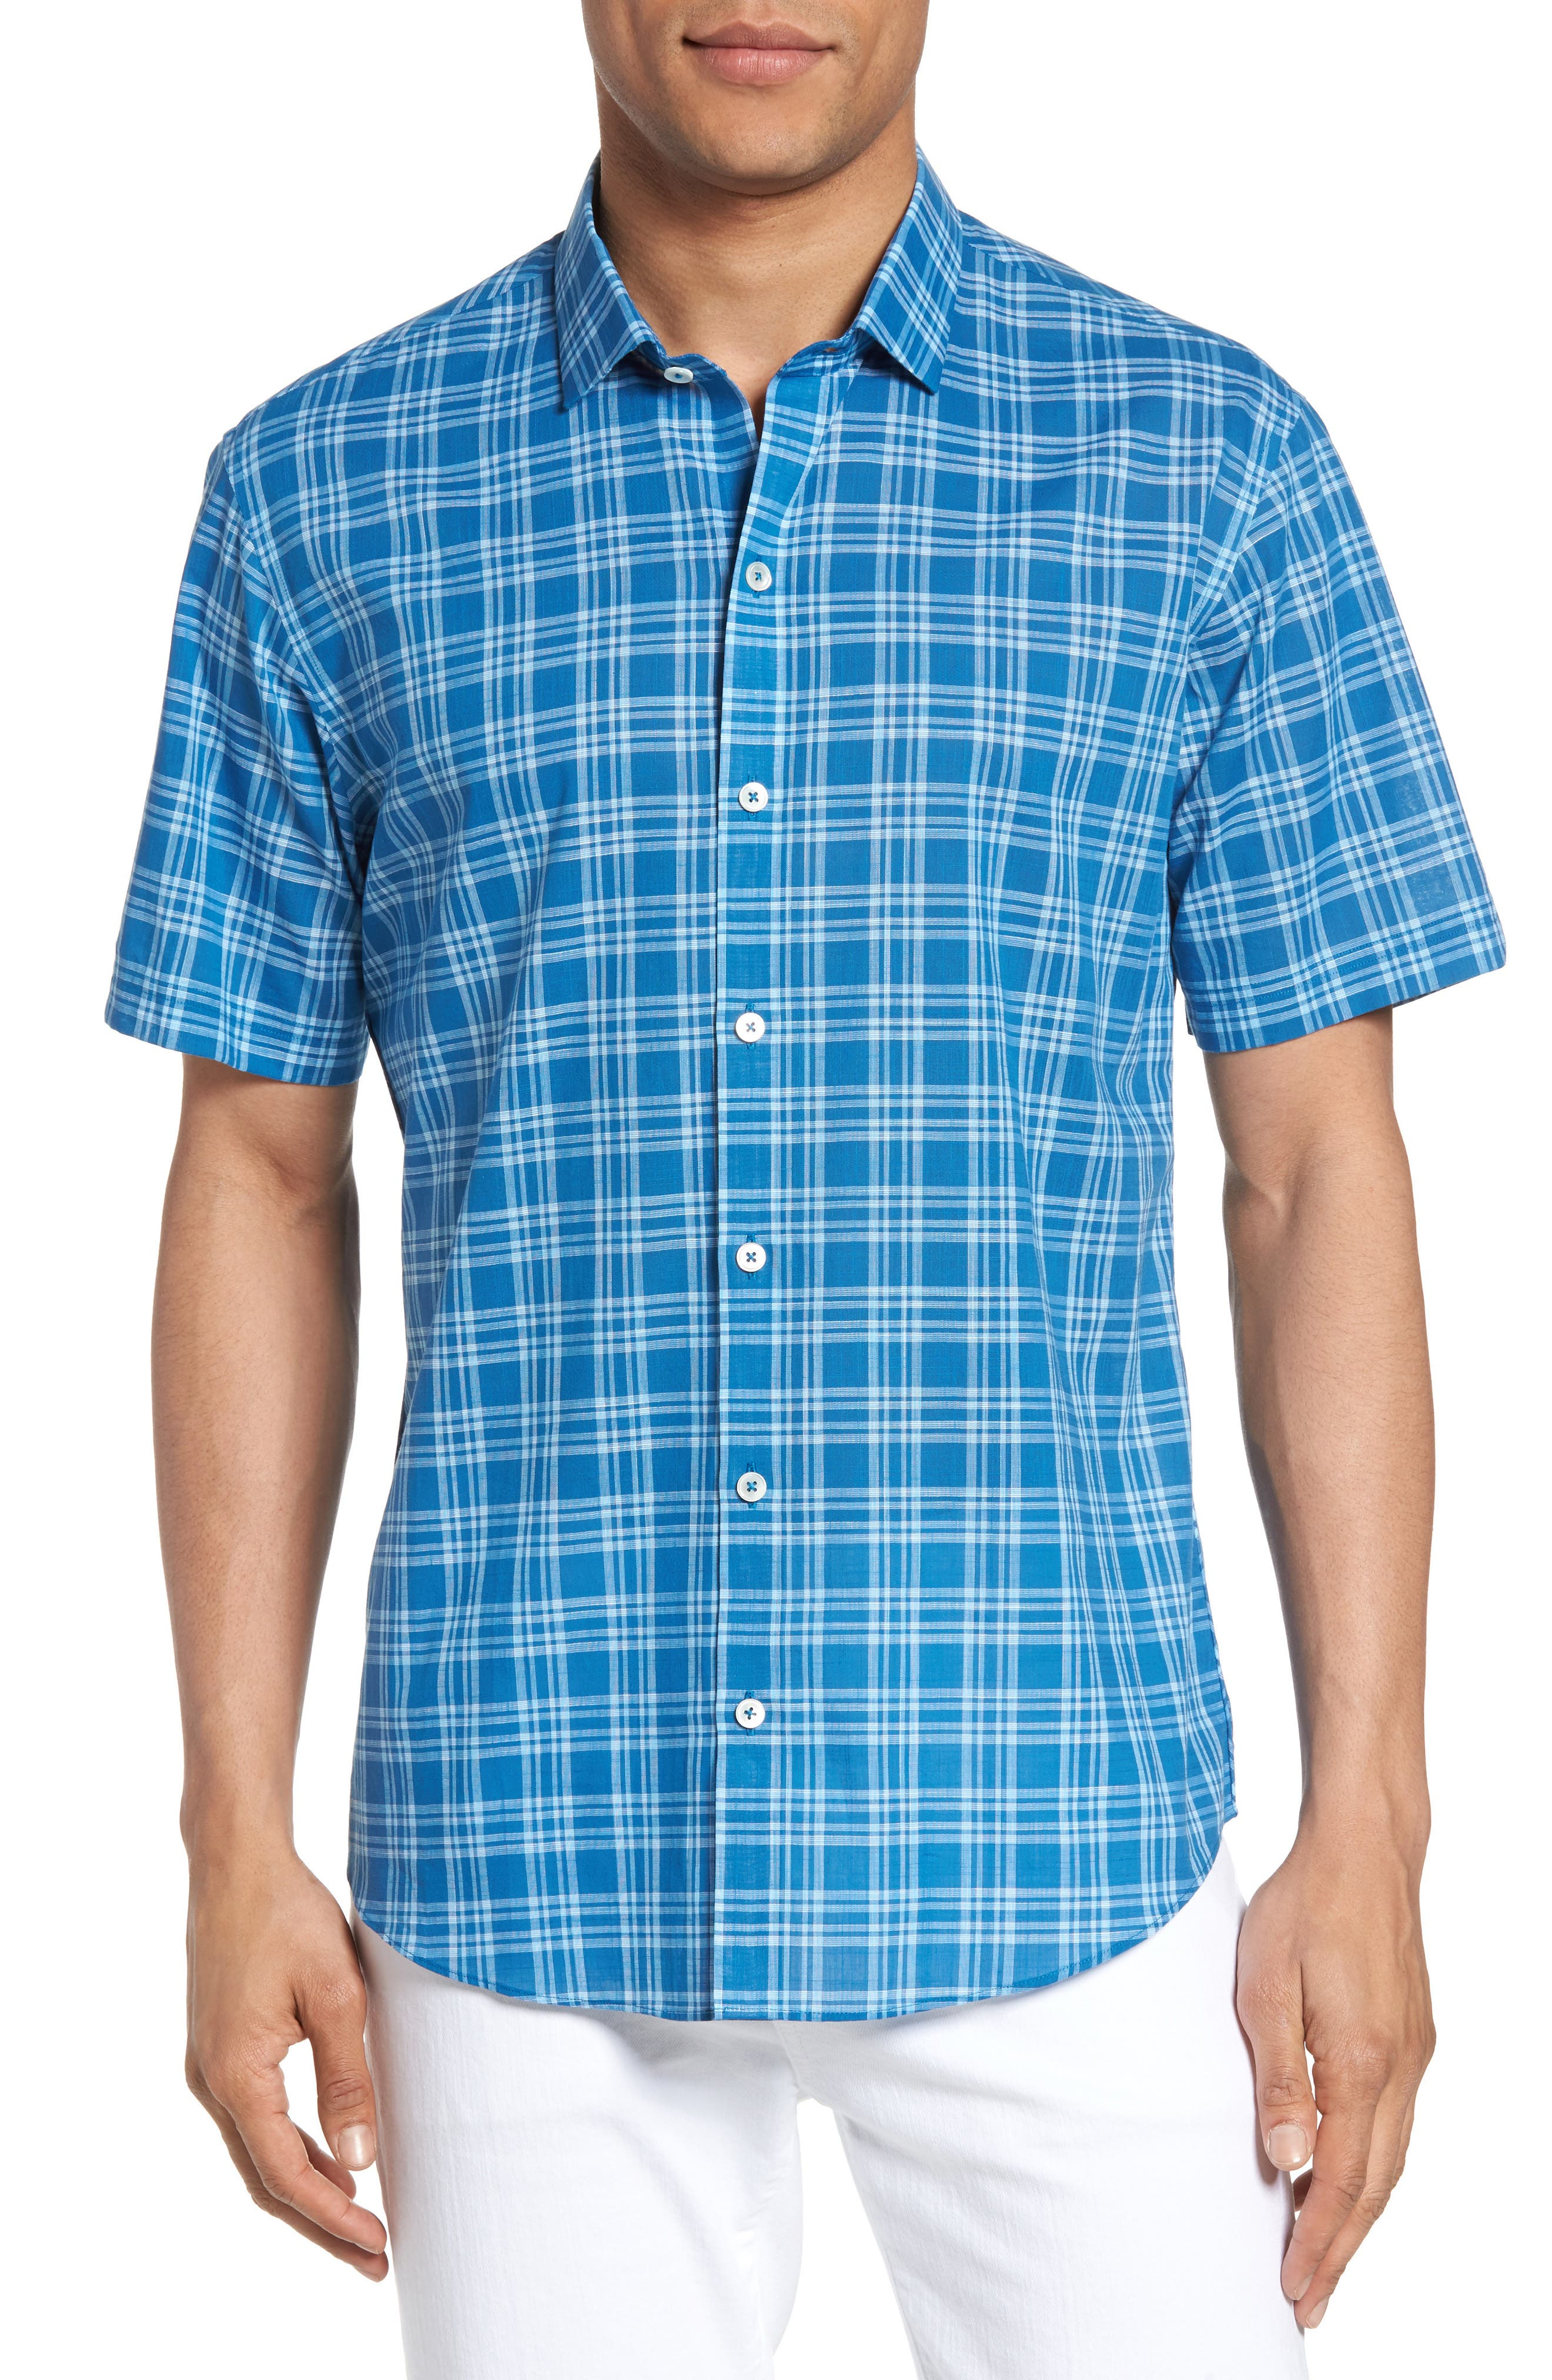 Kirchner Plaid Sport Shirt,                             Main thumbnail 1, color,                             460